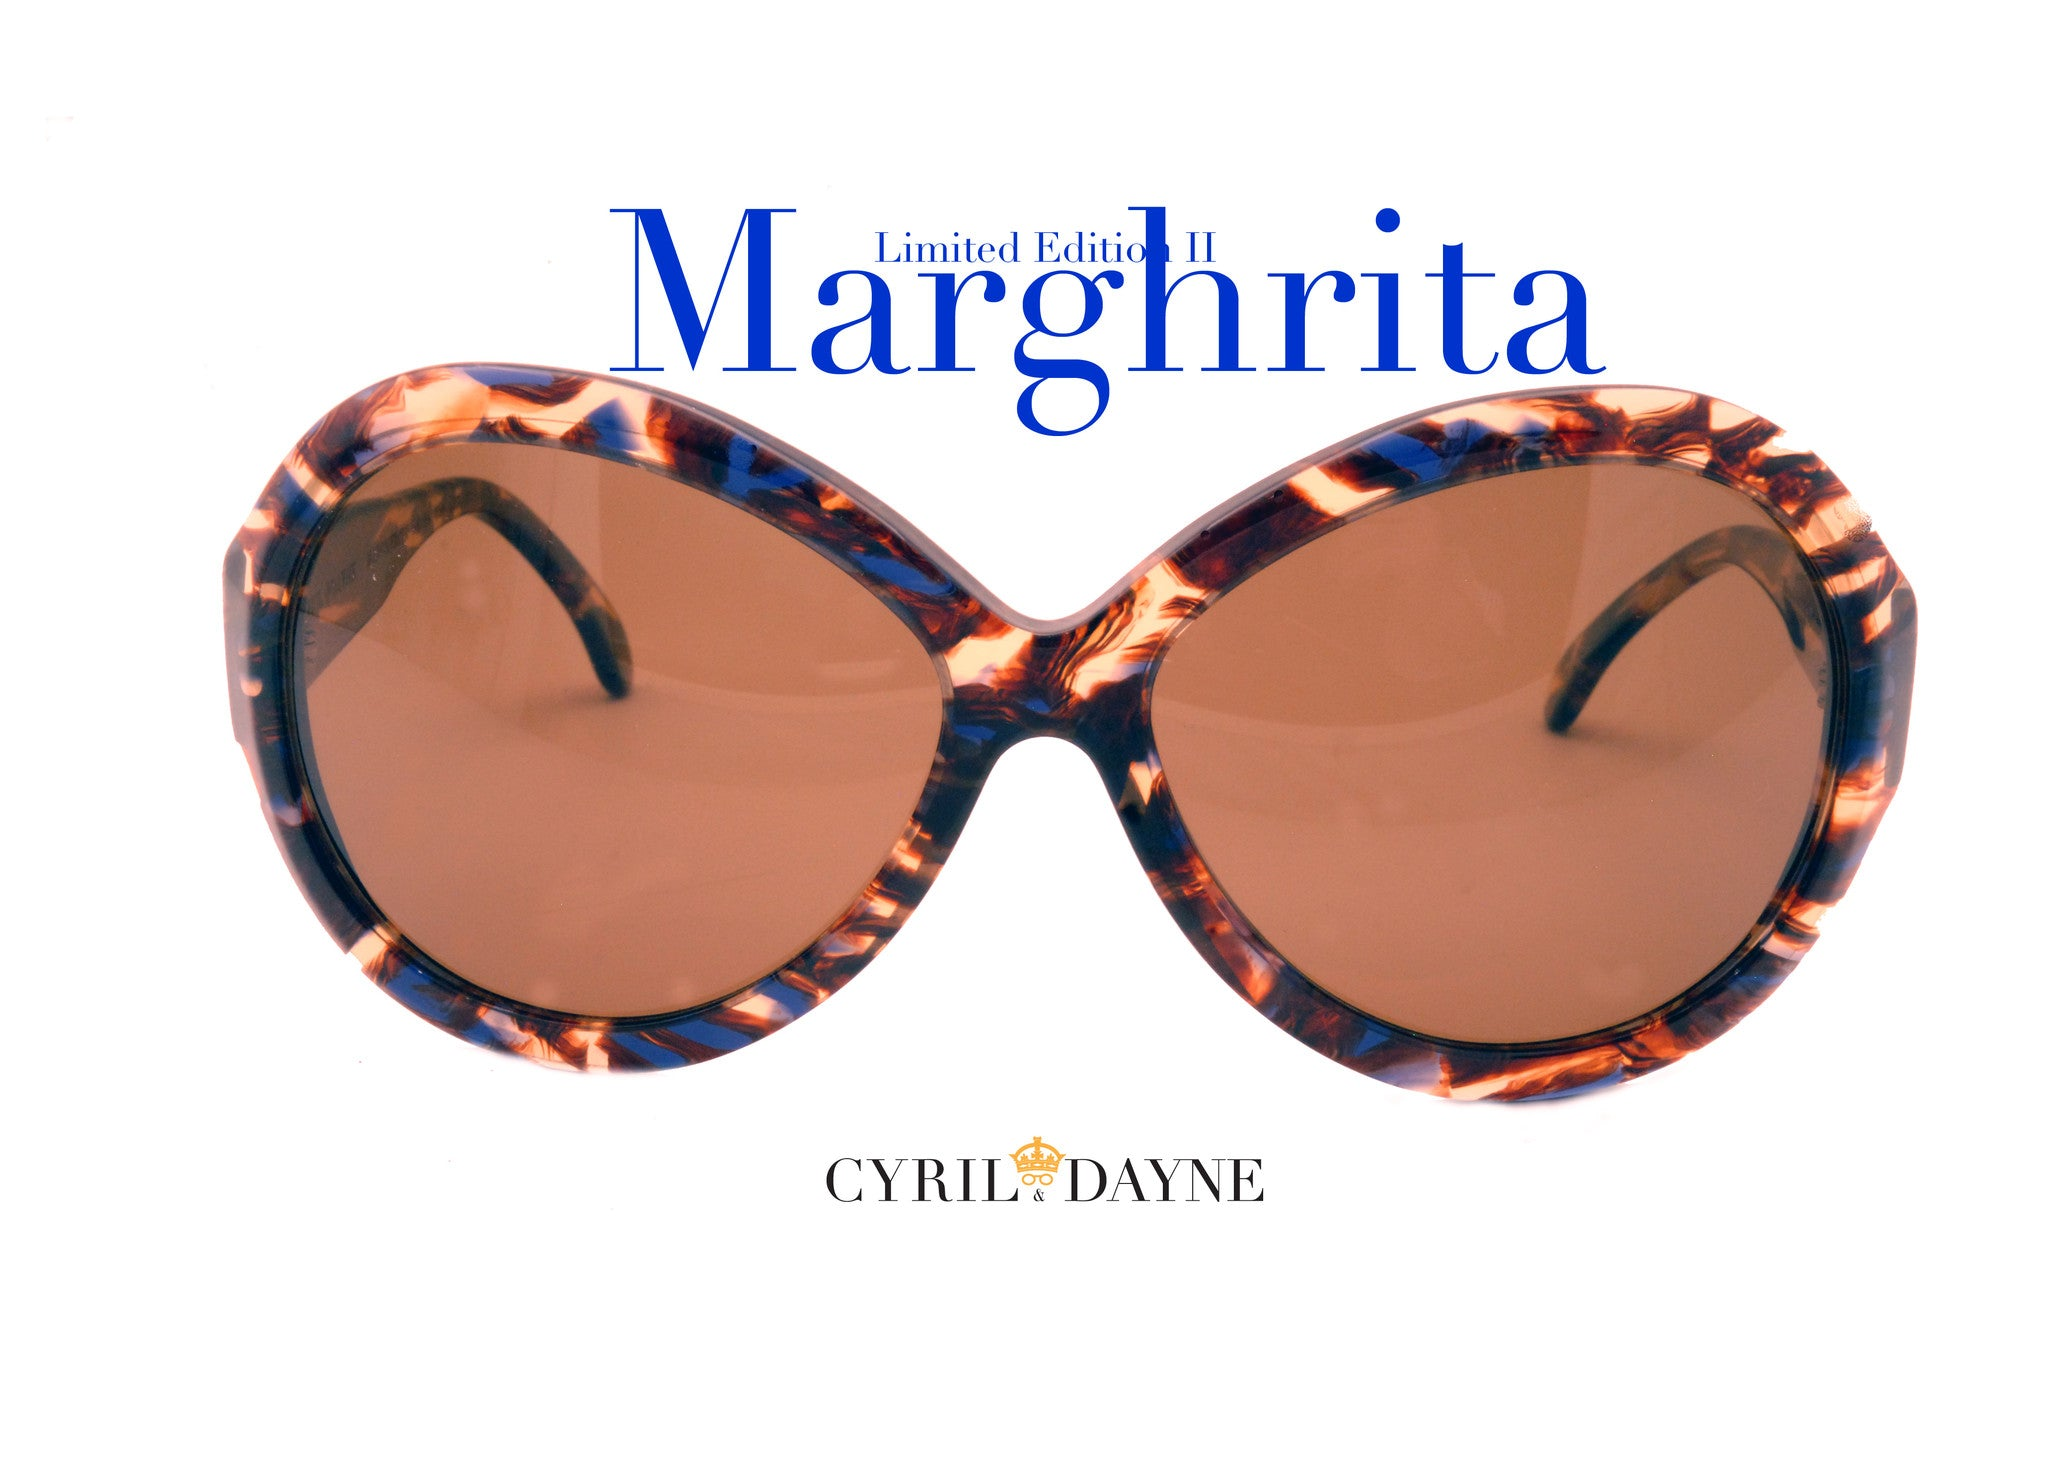 CD MARGARITA-LIMITED EDITION, Lens Brown Polarized,